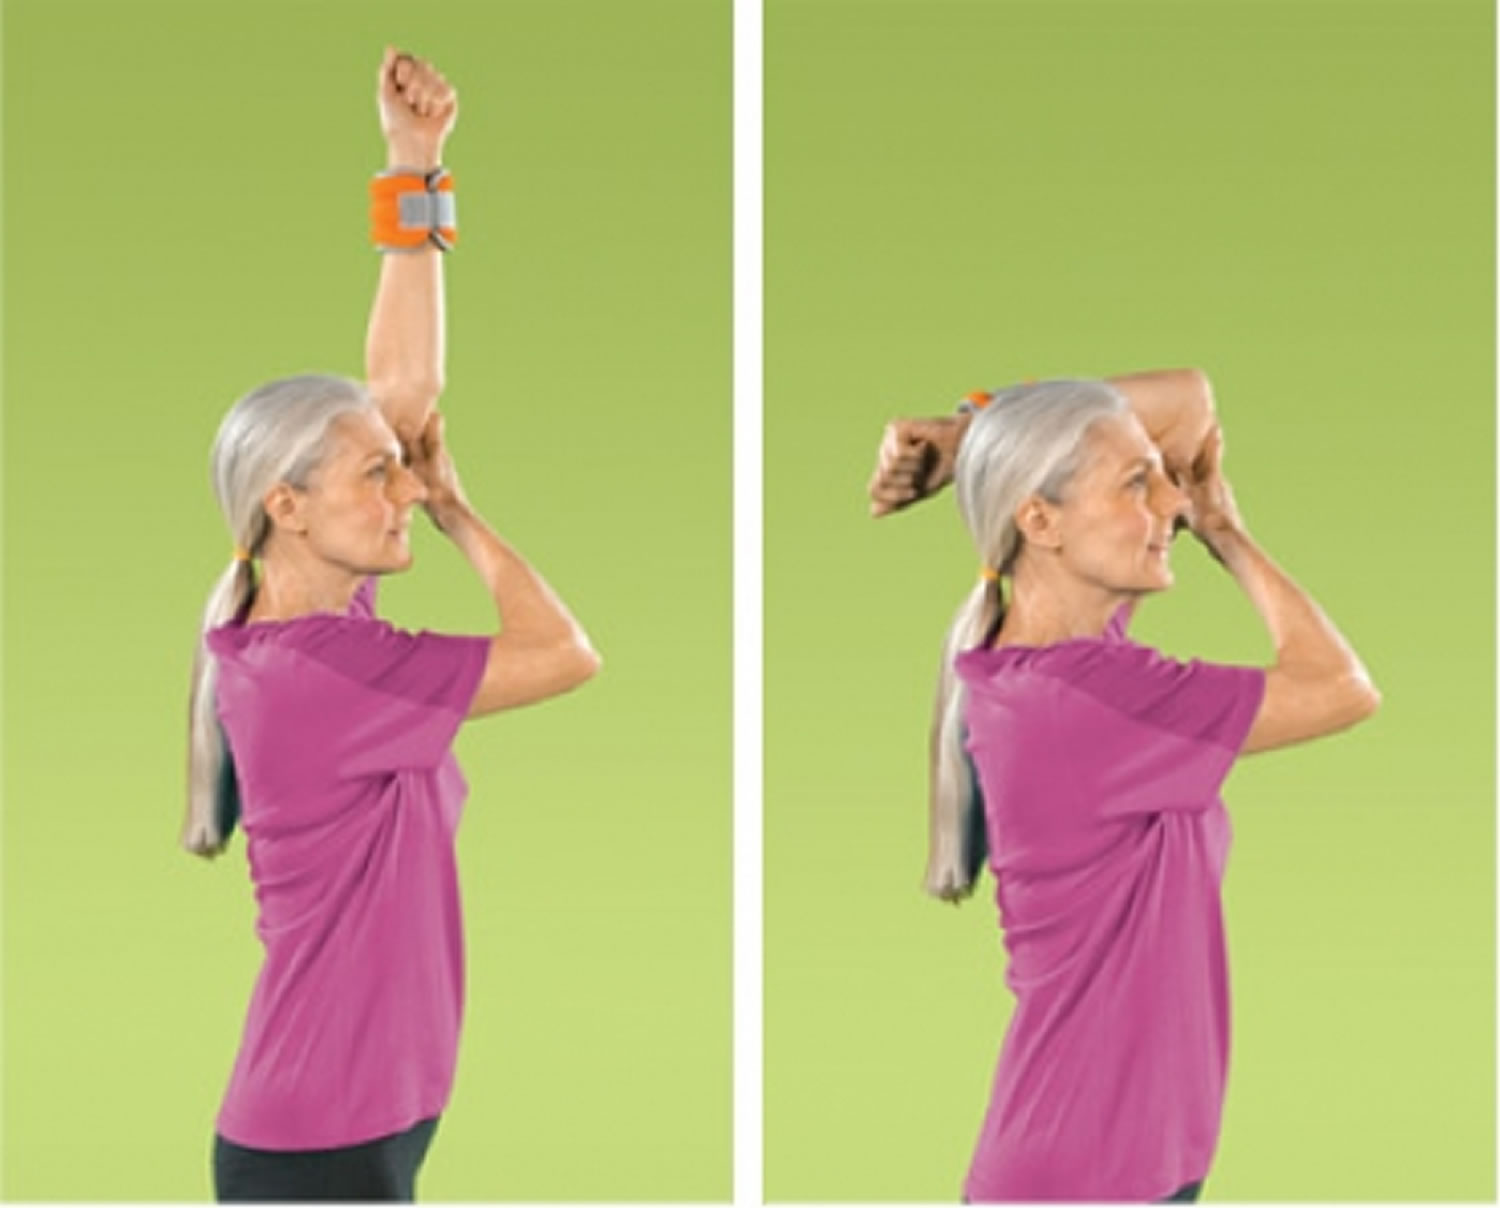 Elbow Extension Strength Exercise for Seniors